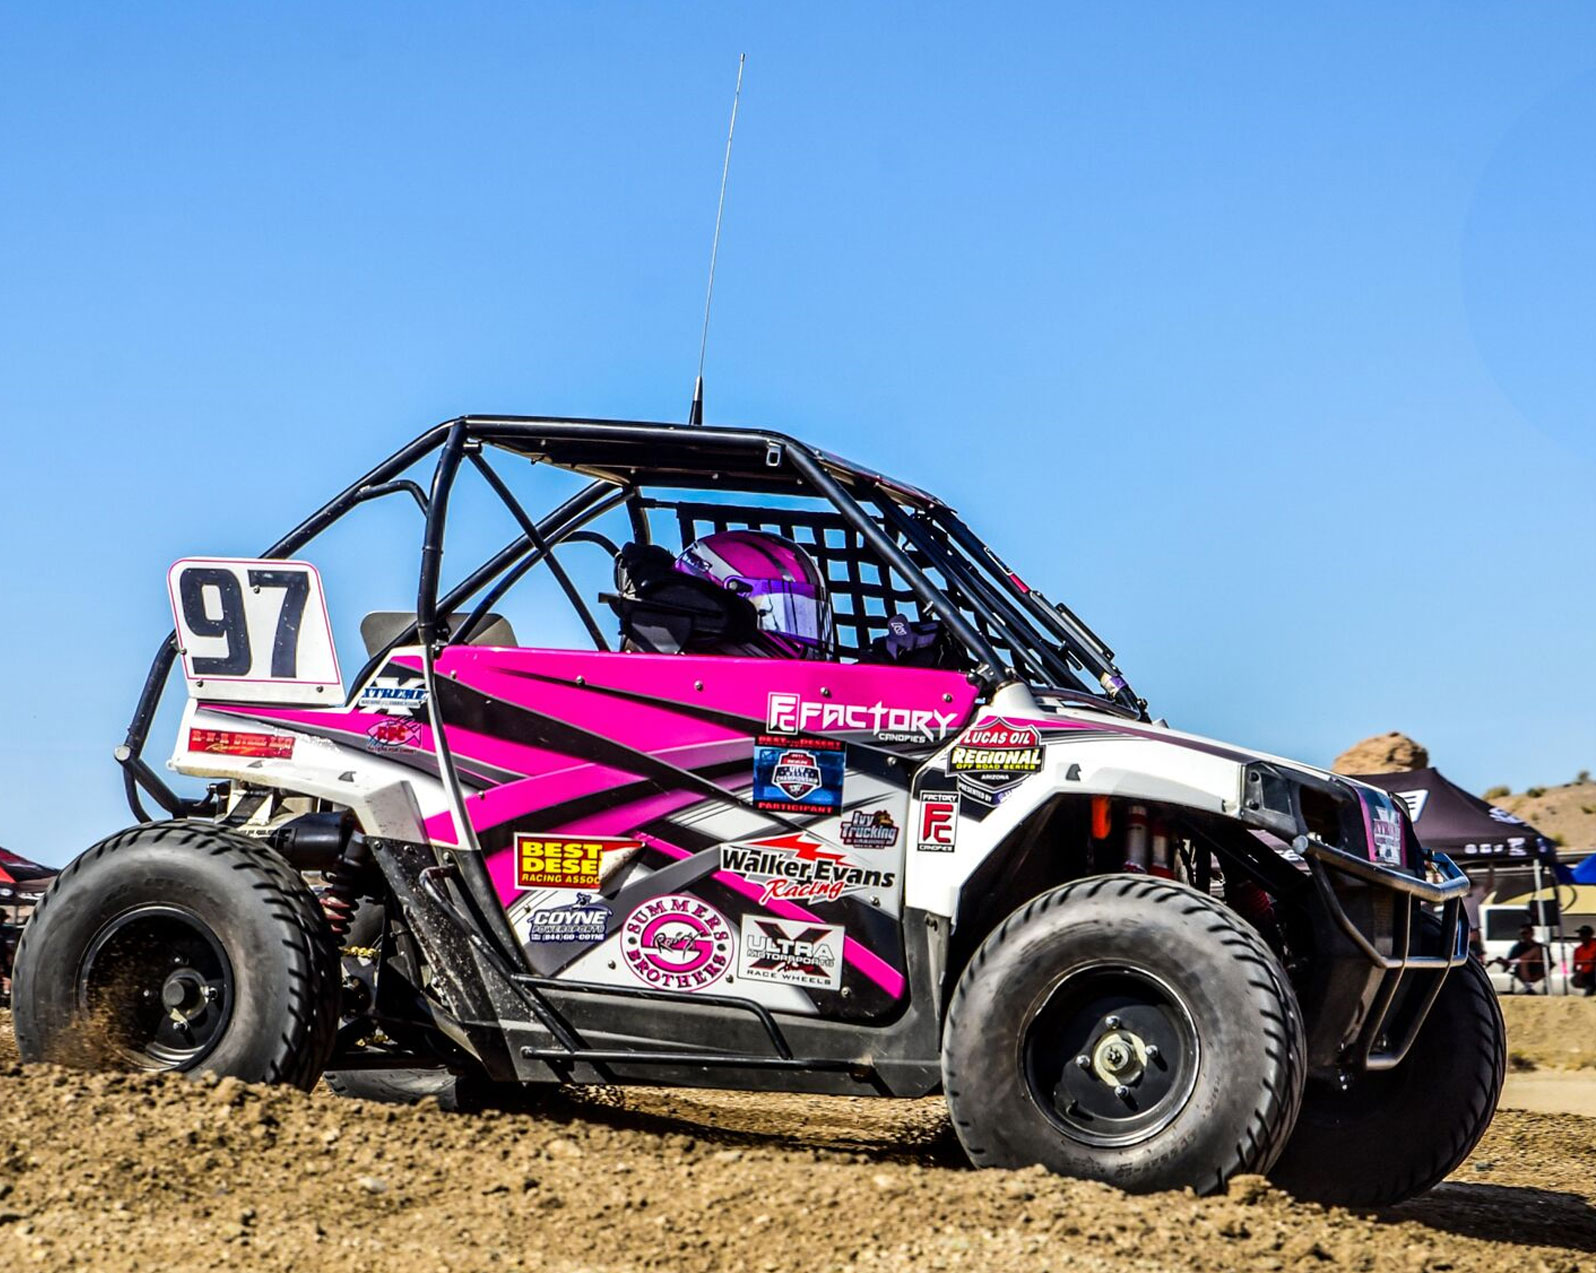 RZR 170 Products & Parts | Xtreme Machine & Fabrication